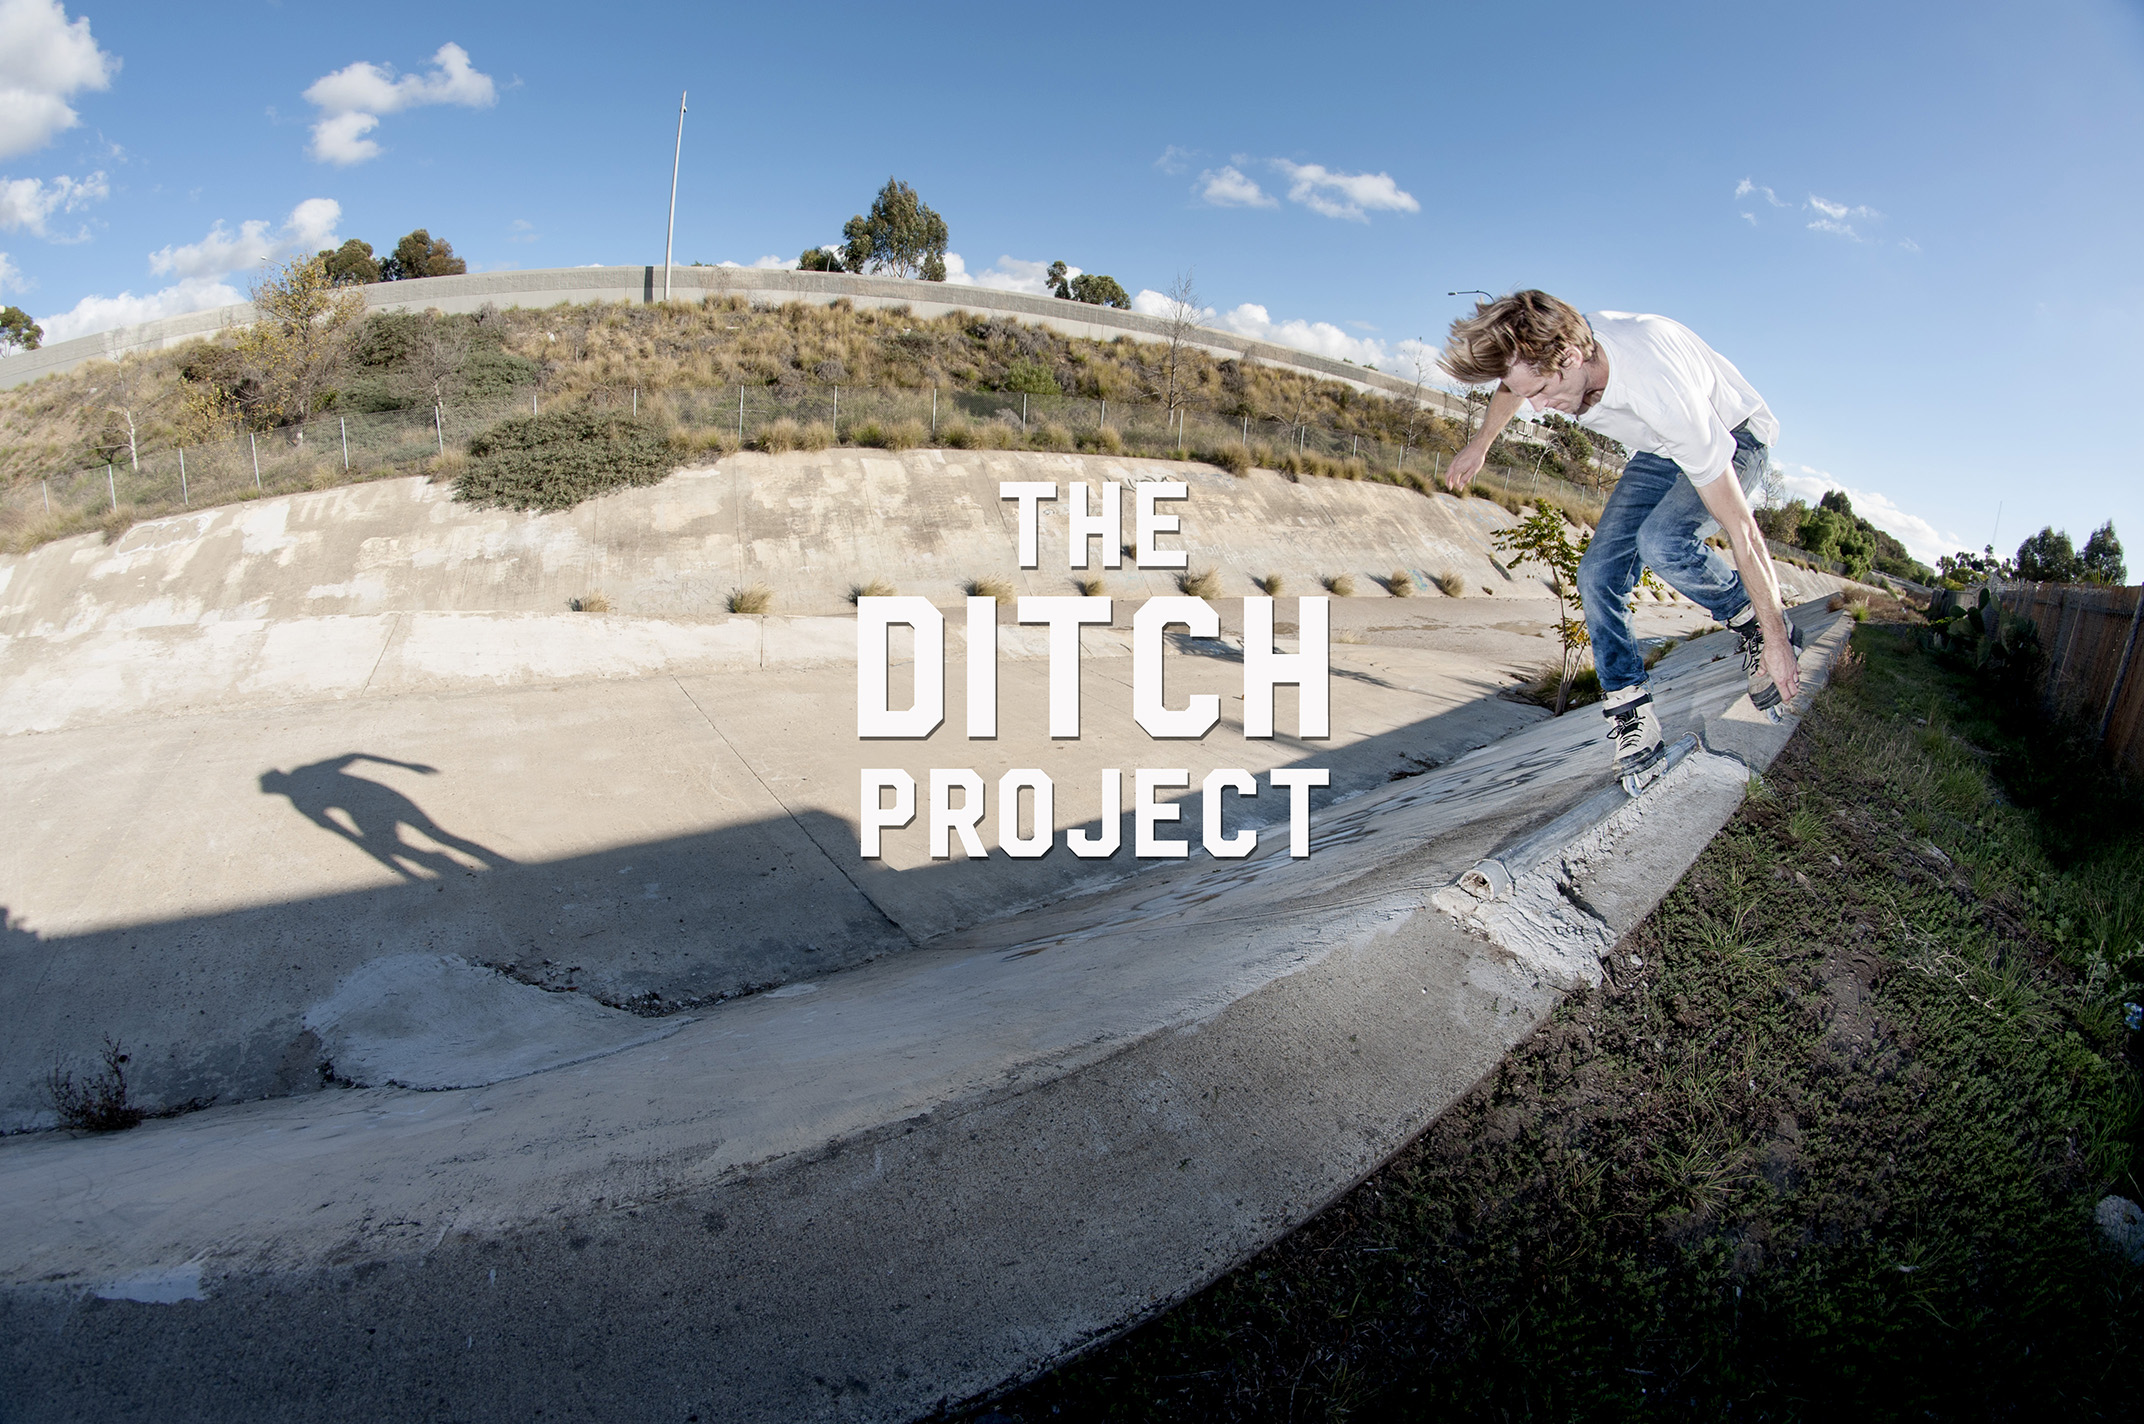 The Ditch Project